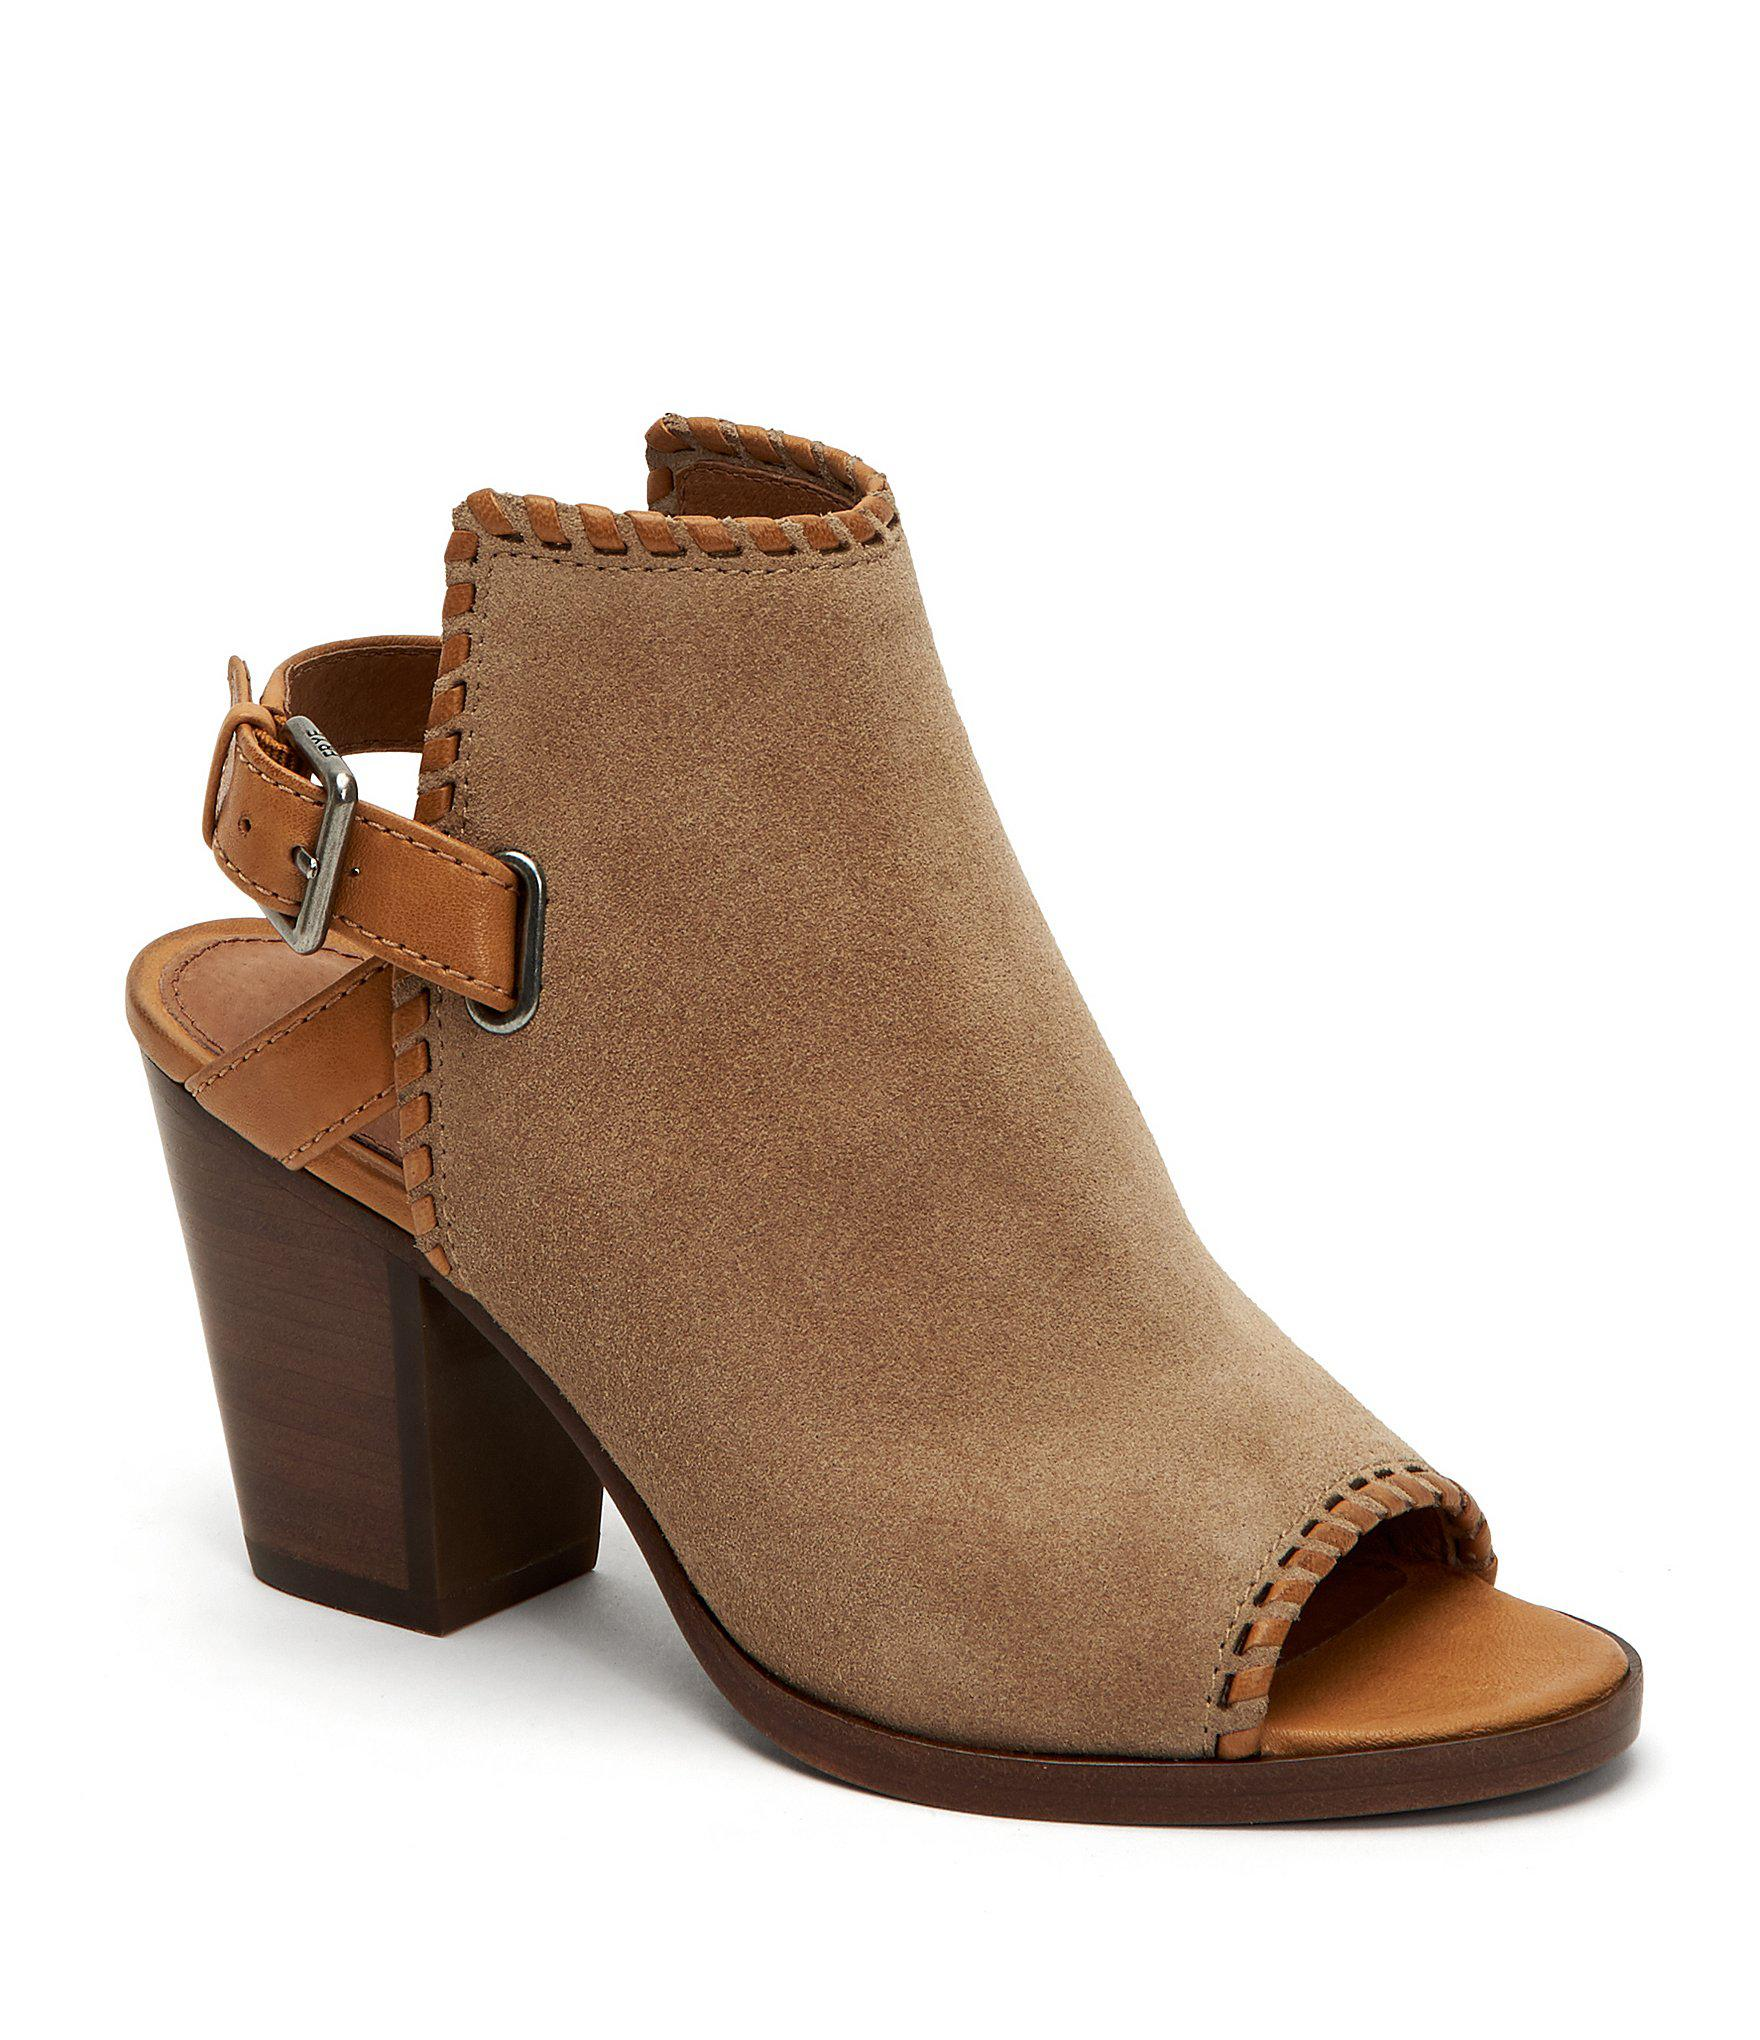 9562bfb3247 Lyst - Frye Dani Shield Suede Whipstitch Sling Shooties in Natural